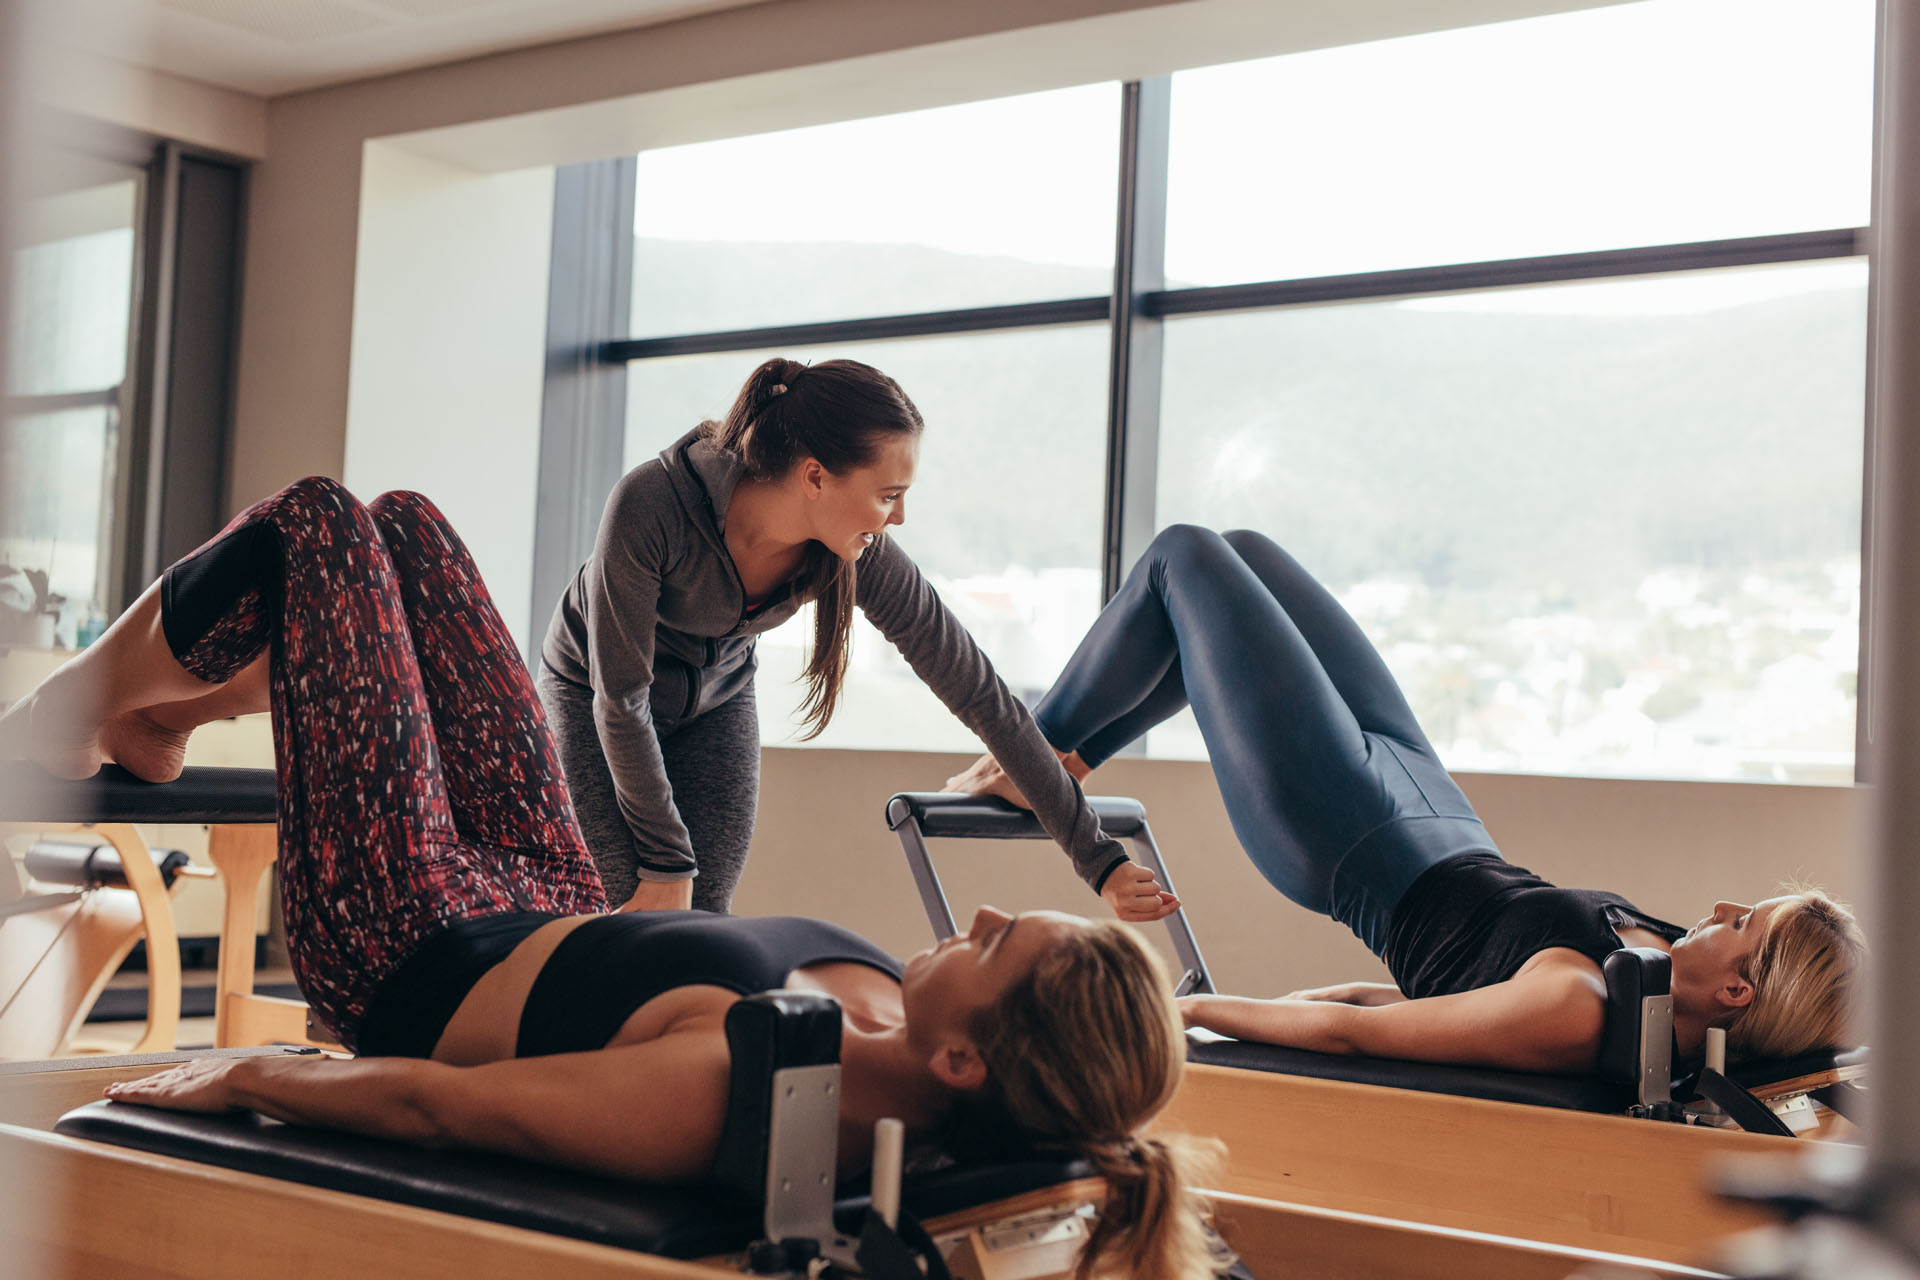 Women doing pilates exercises lying on machines while their trainer guides them. Two fitness women being trained by pilates instructor.